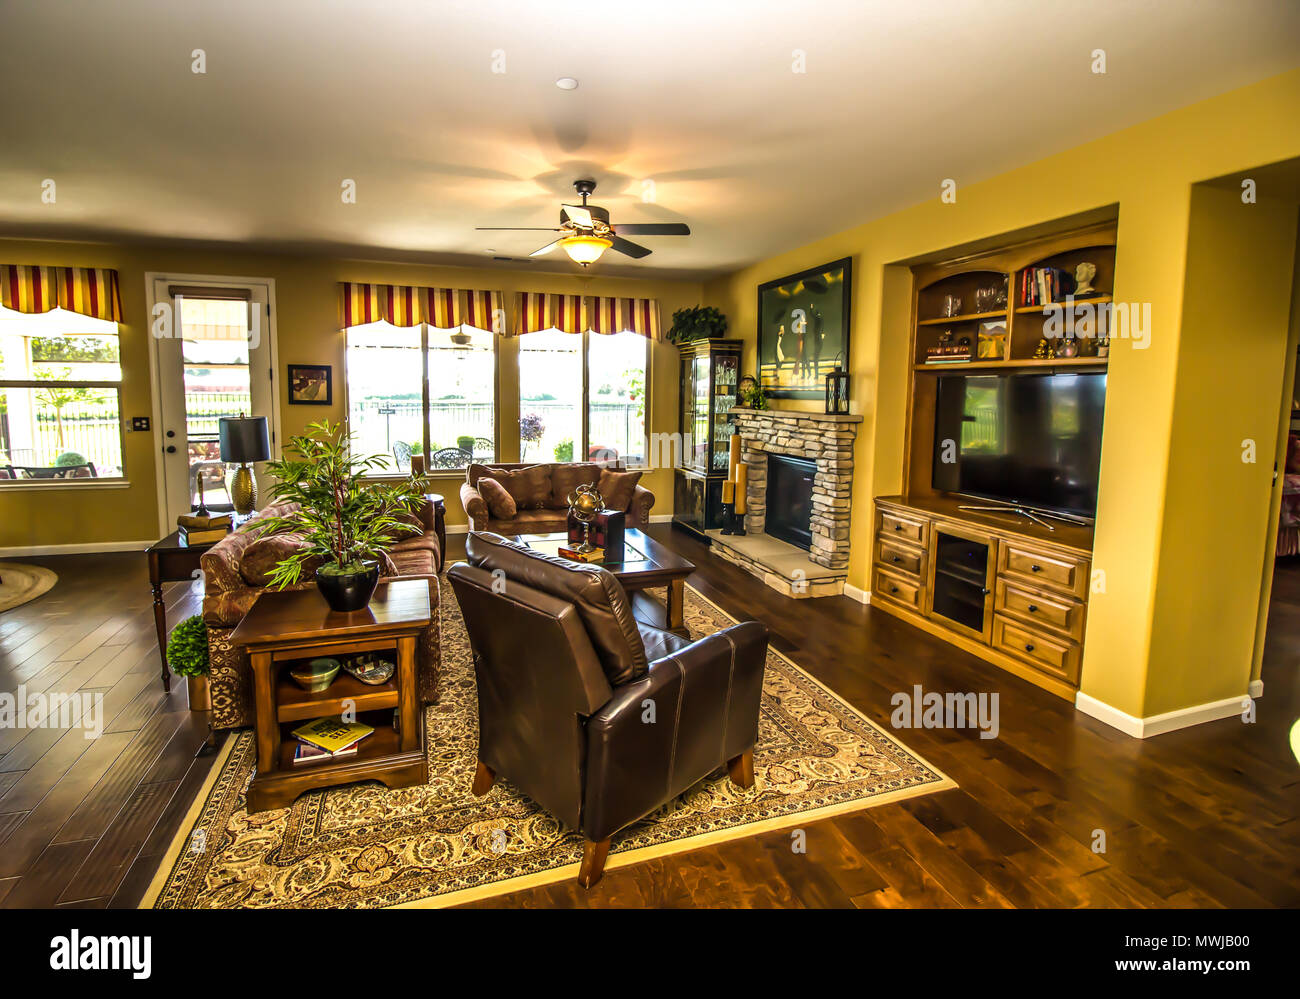 Modern Living Room With Built In Television Cabinet & Fireplace - Stock Image